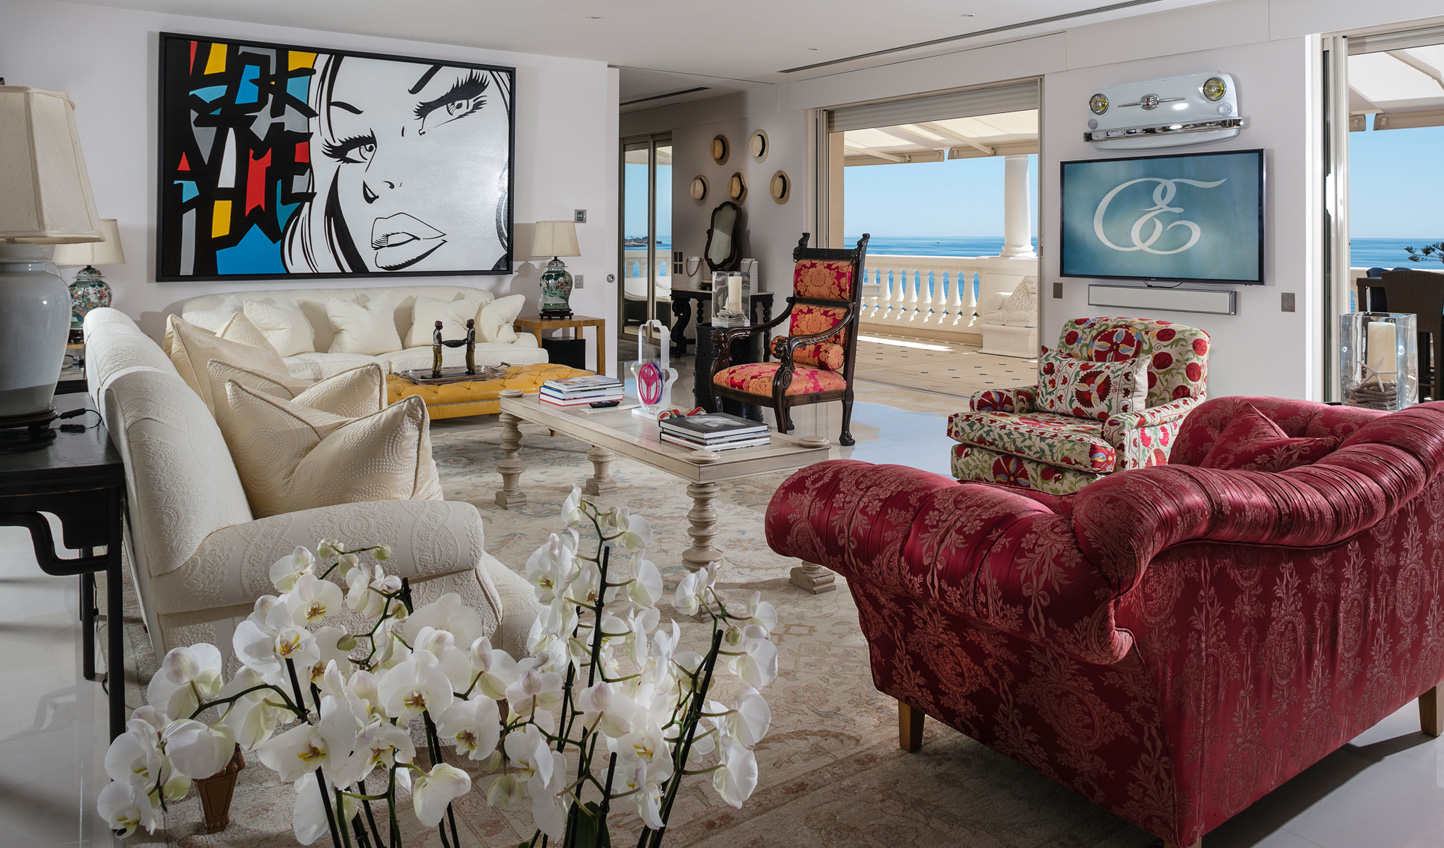 Splashes of colour add a sense of fun in the luxurious suites